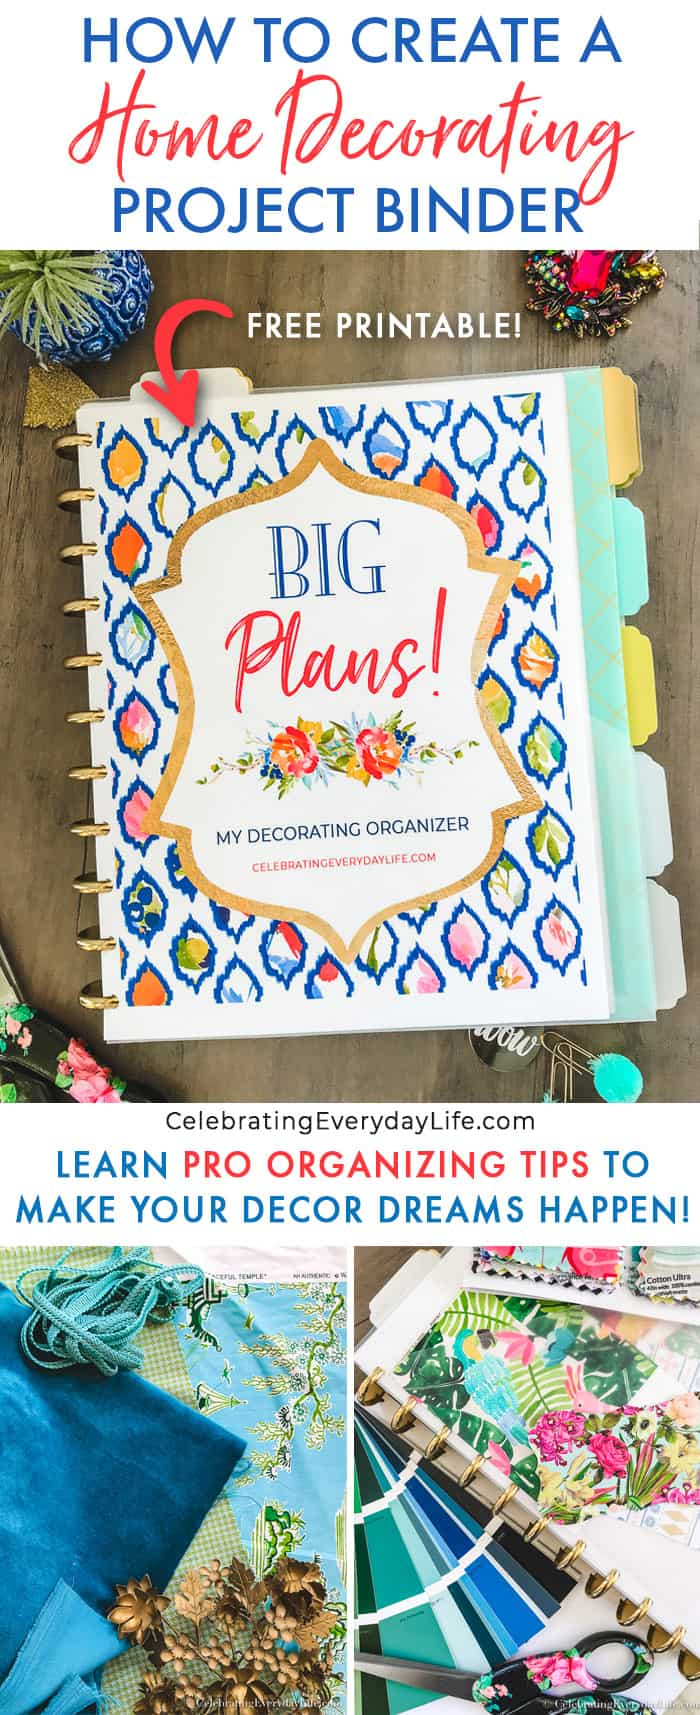 how to create a home decorating project binder